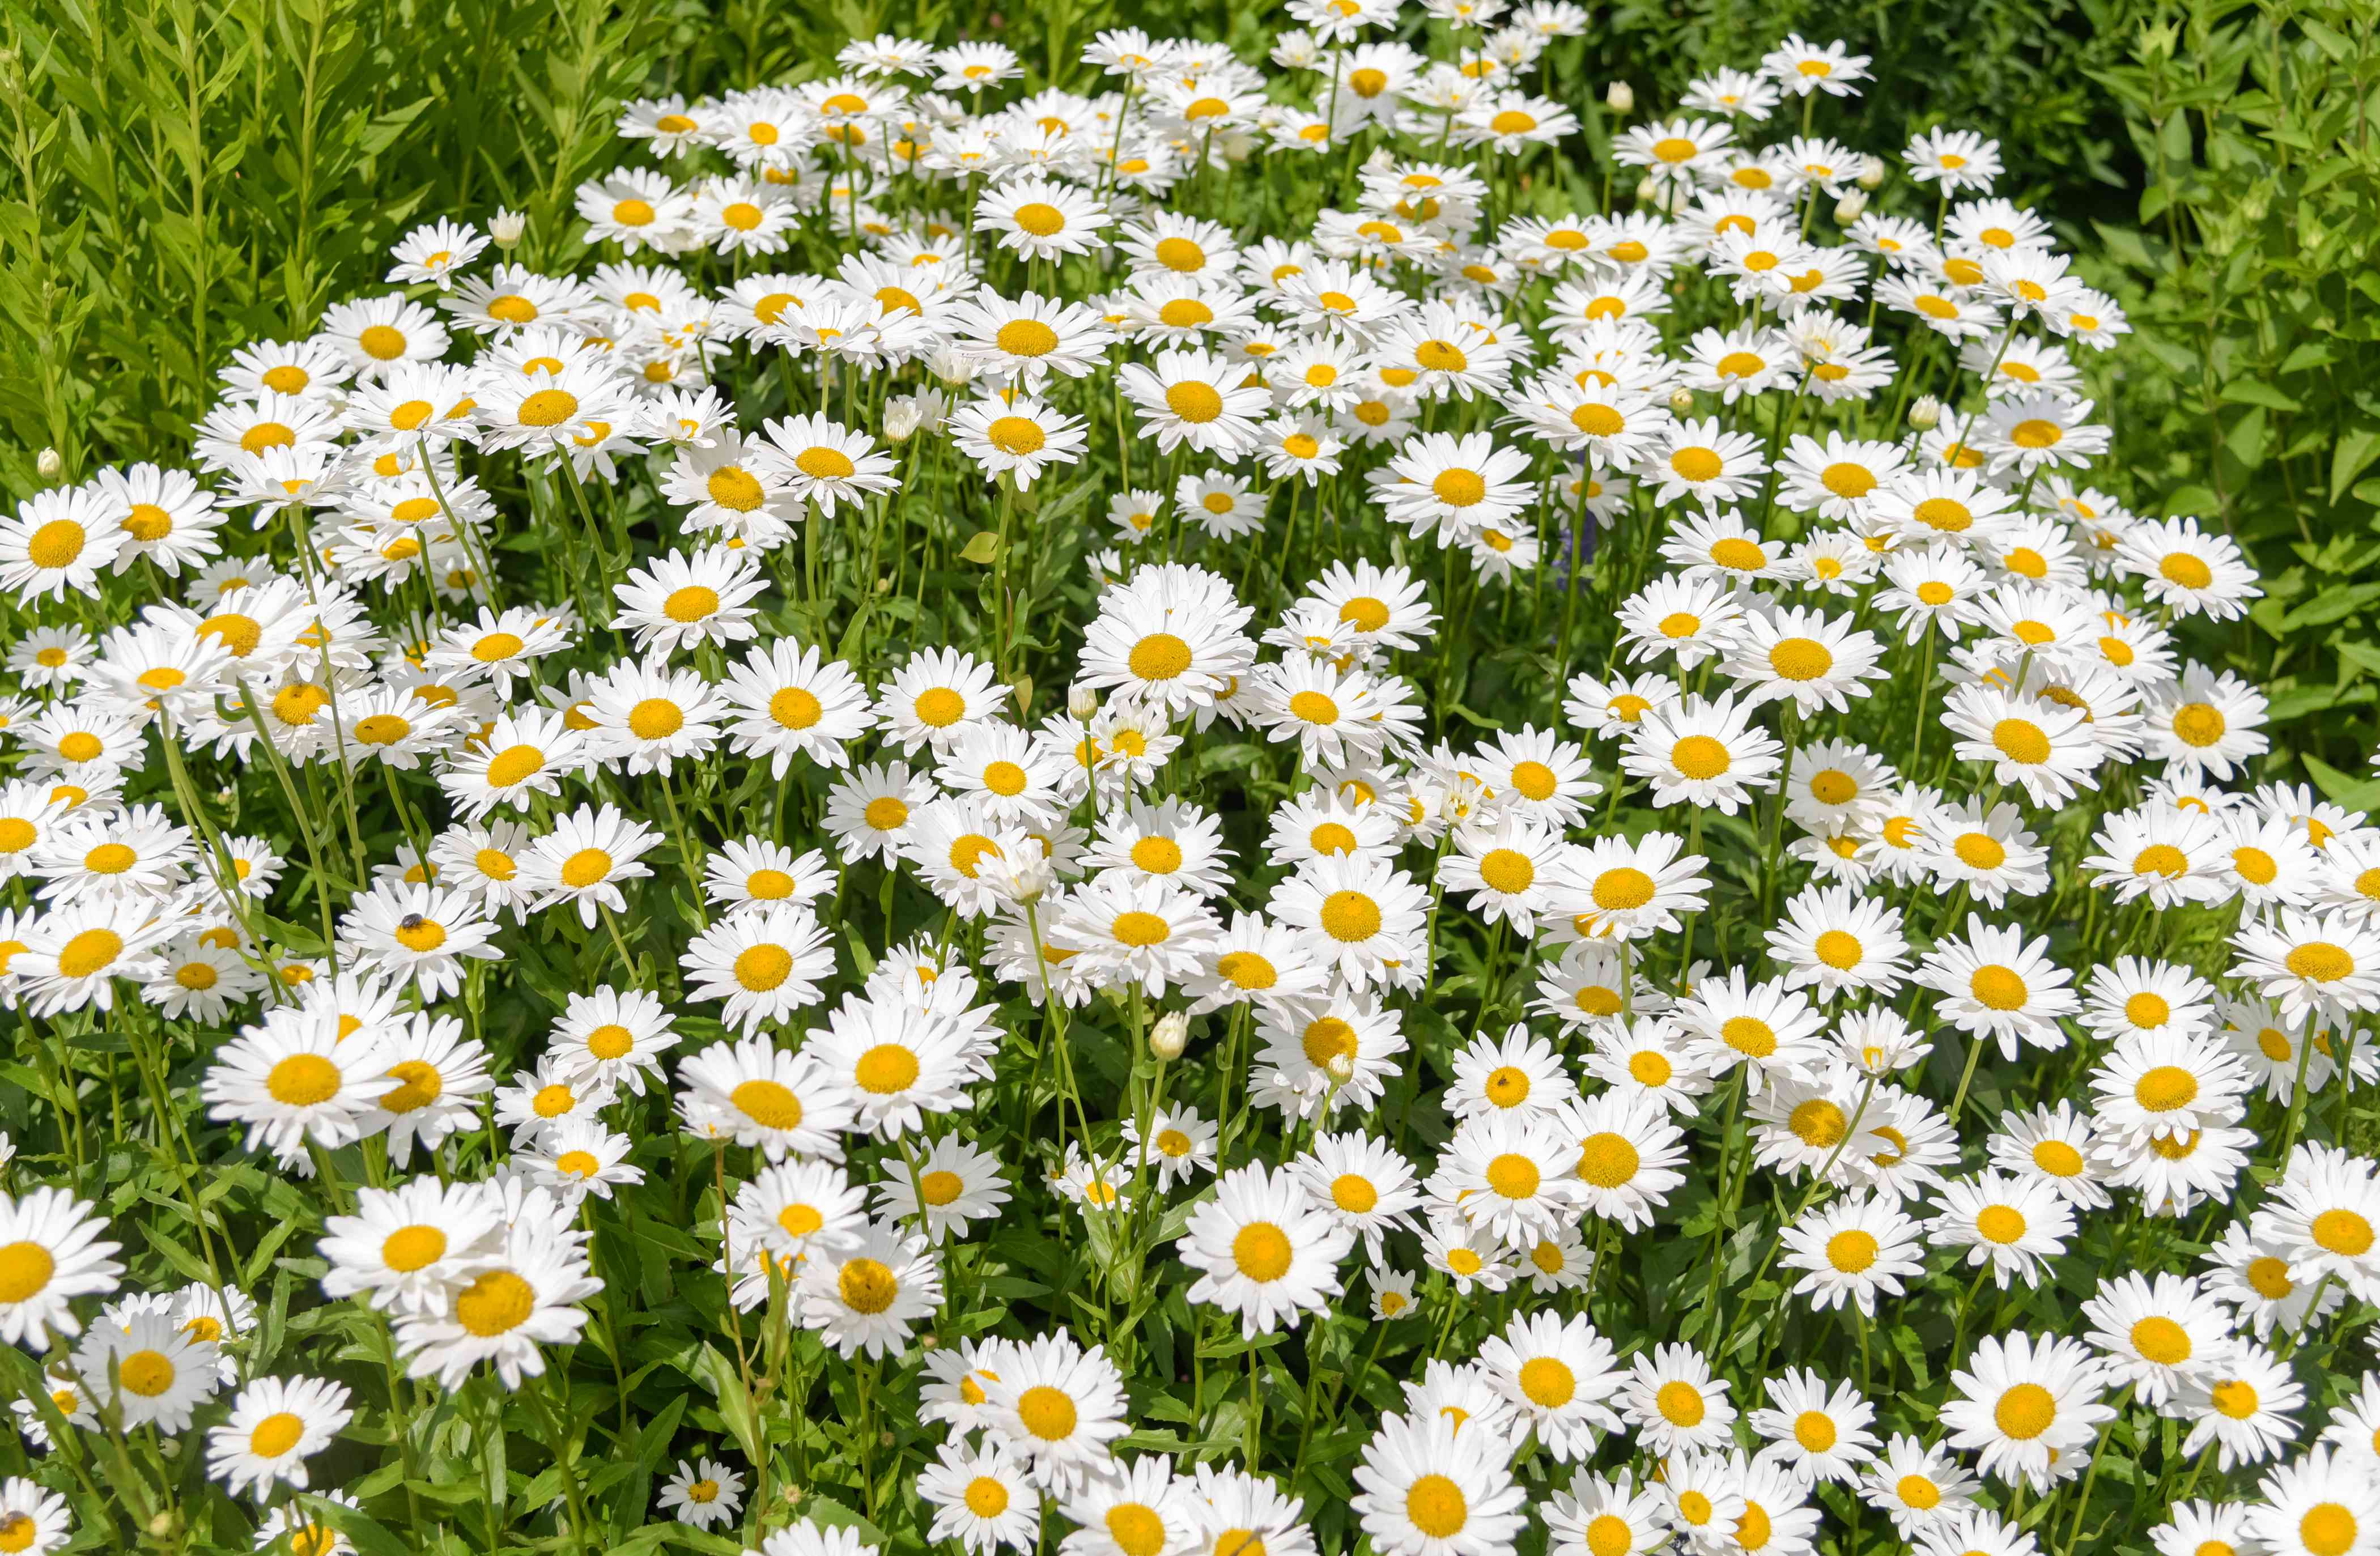 Oxeye daisy flowers clustered together with white radiating petals with yellow centers in sunlight